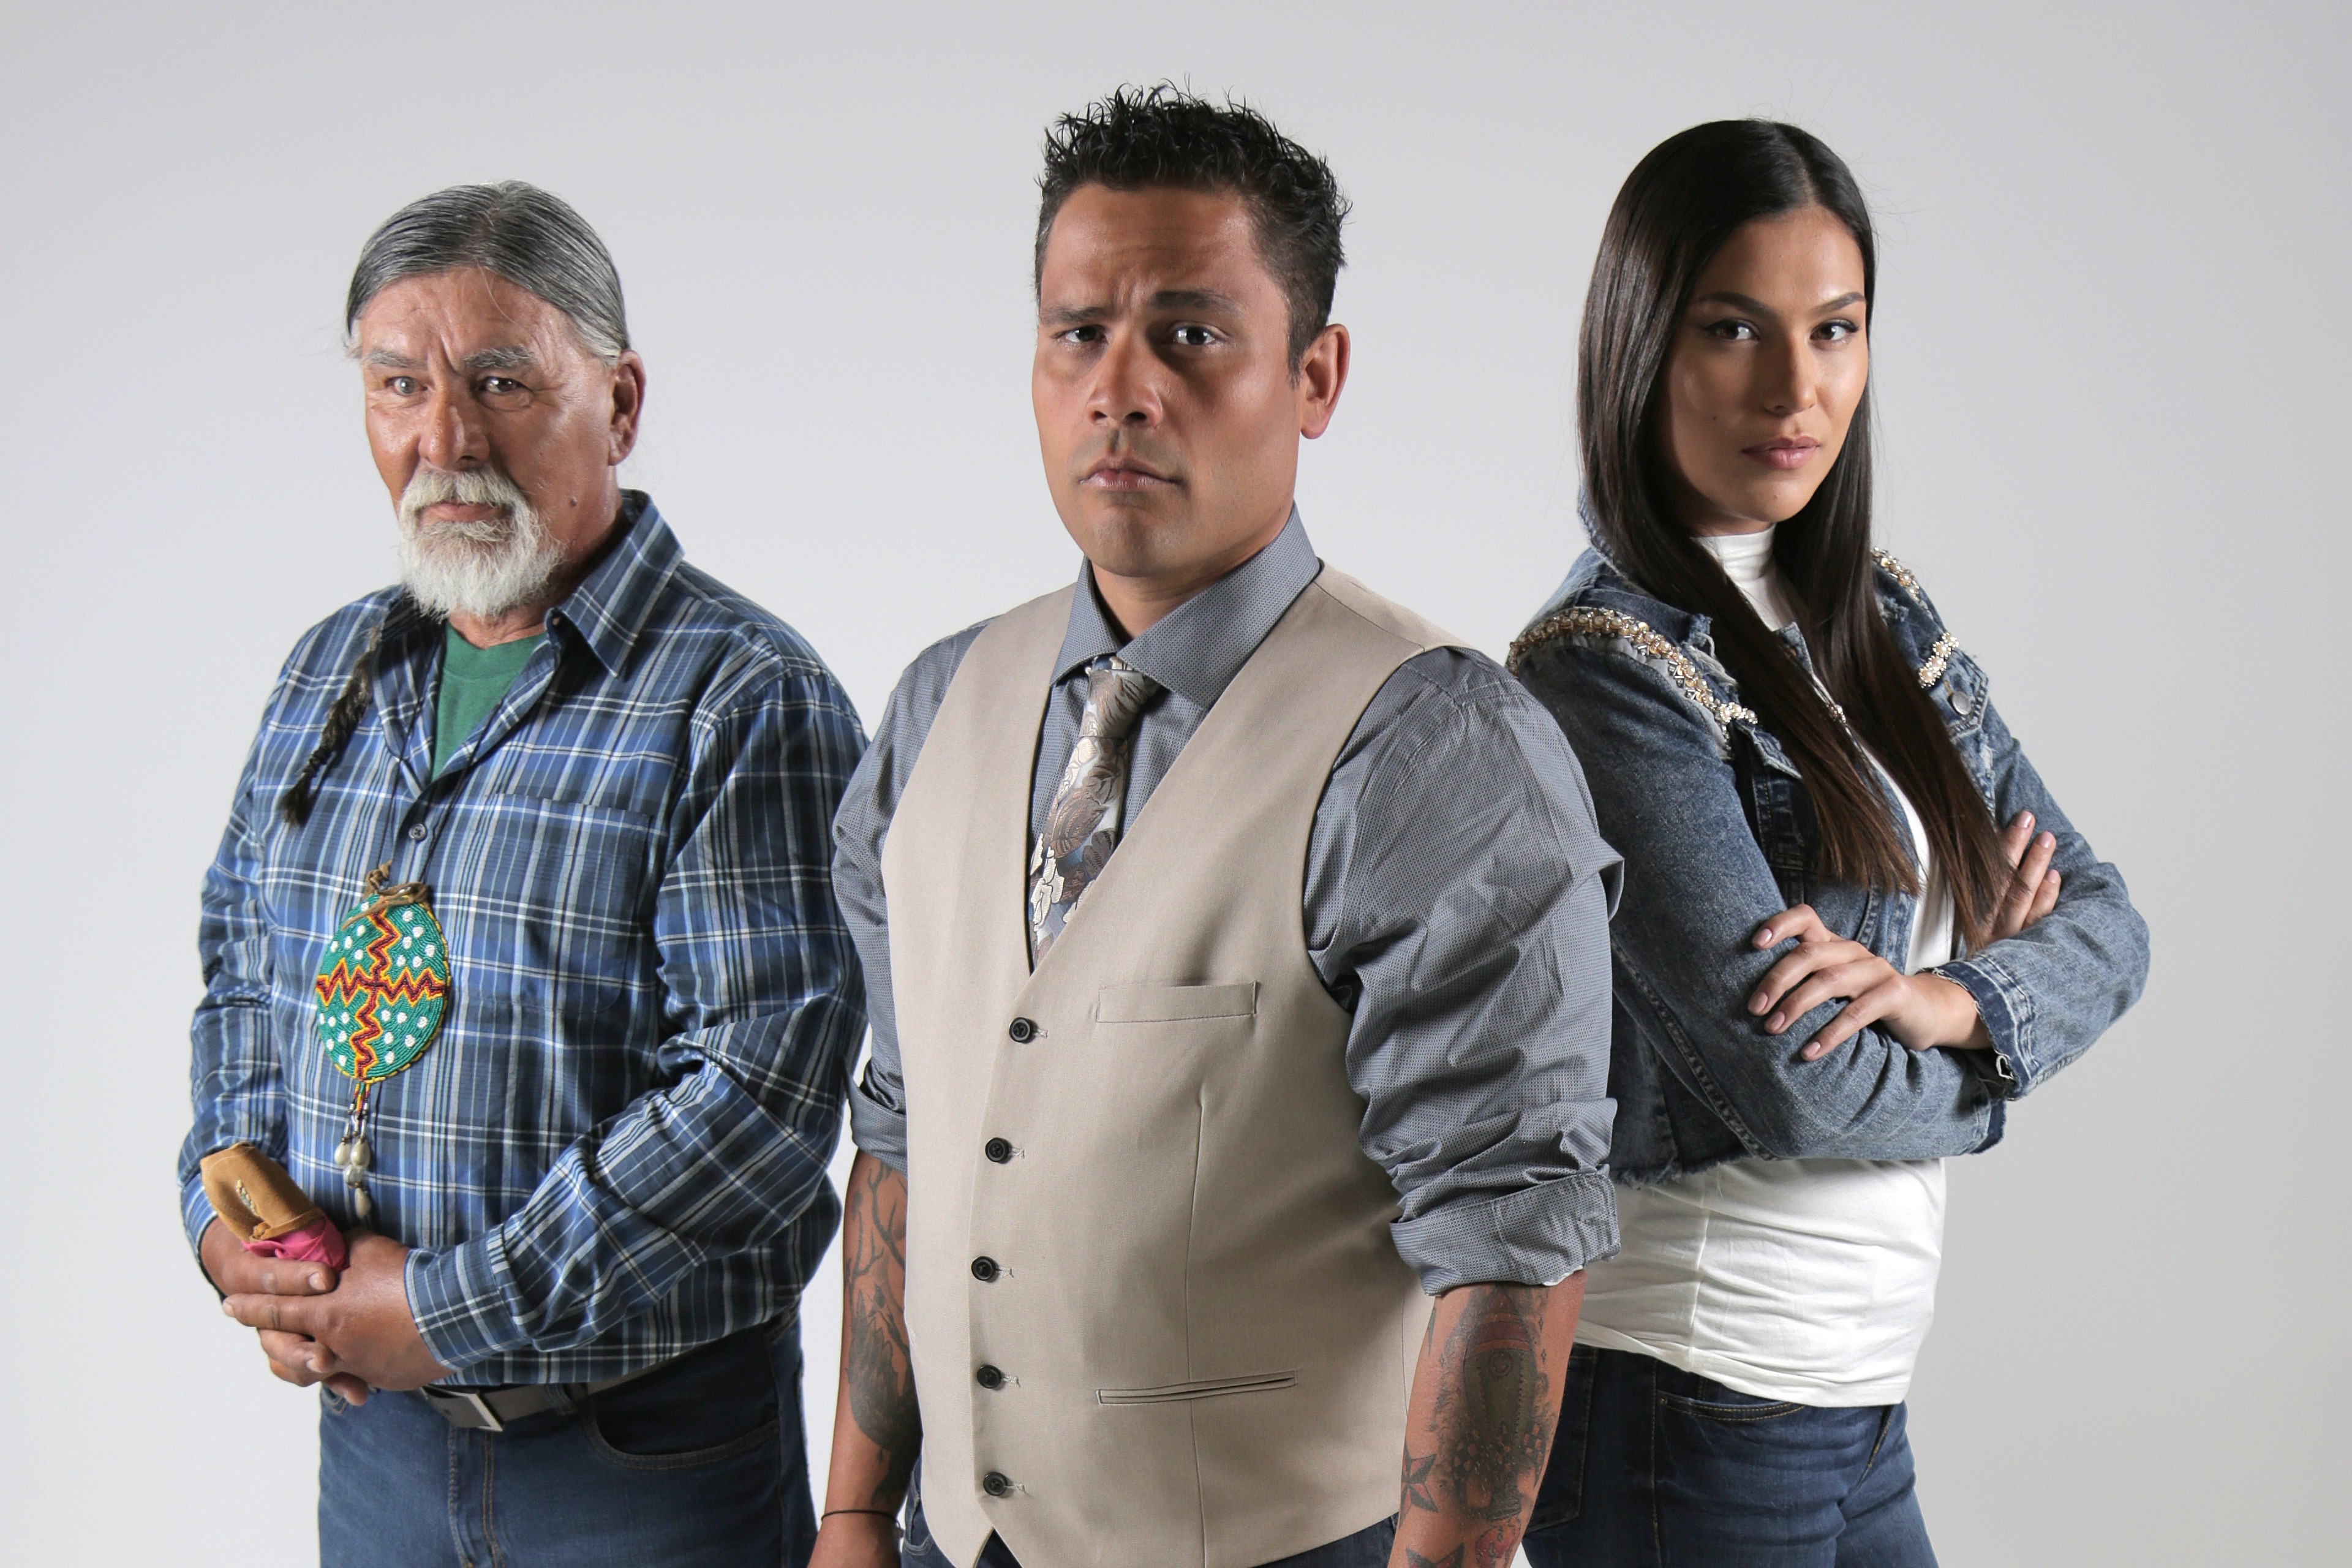 The Other Side Season 5 ghost hunting team - Jeff Richards, Michaella Shannon, Tom Charles